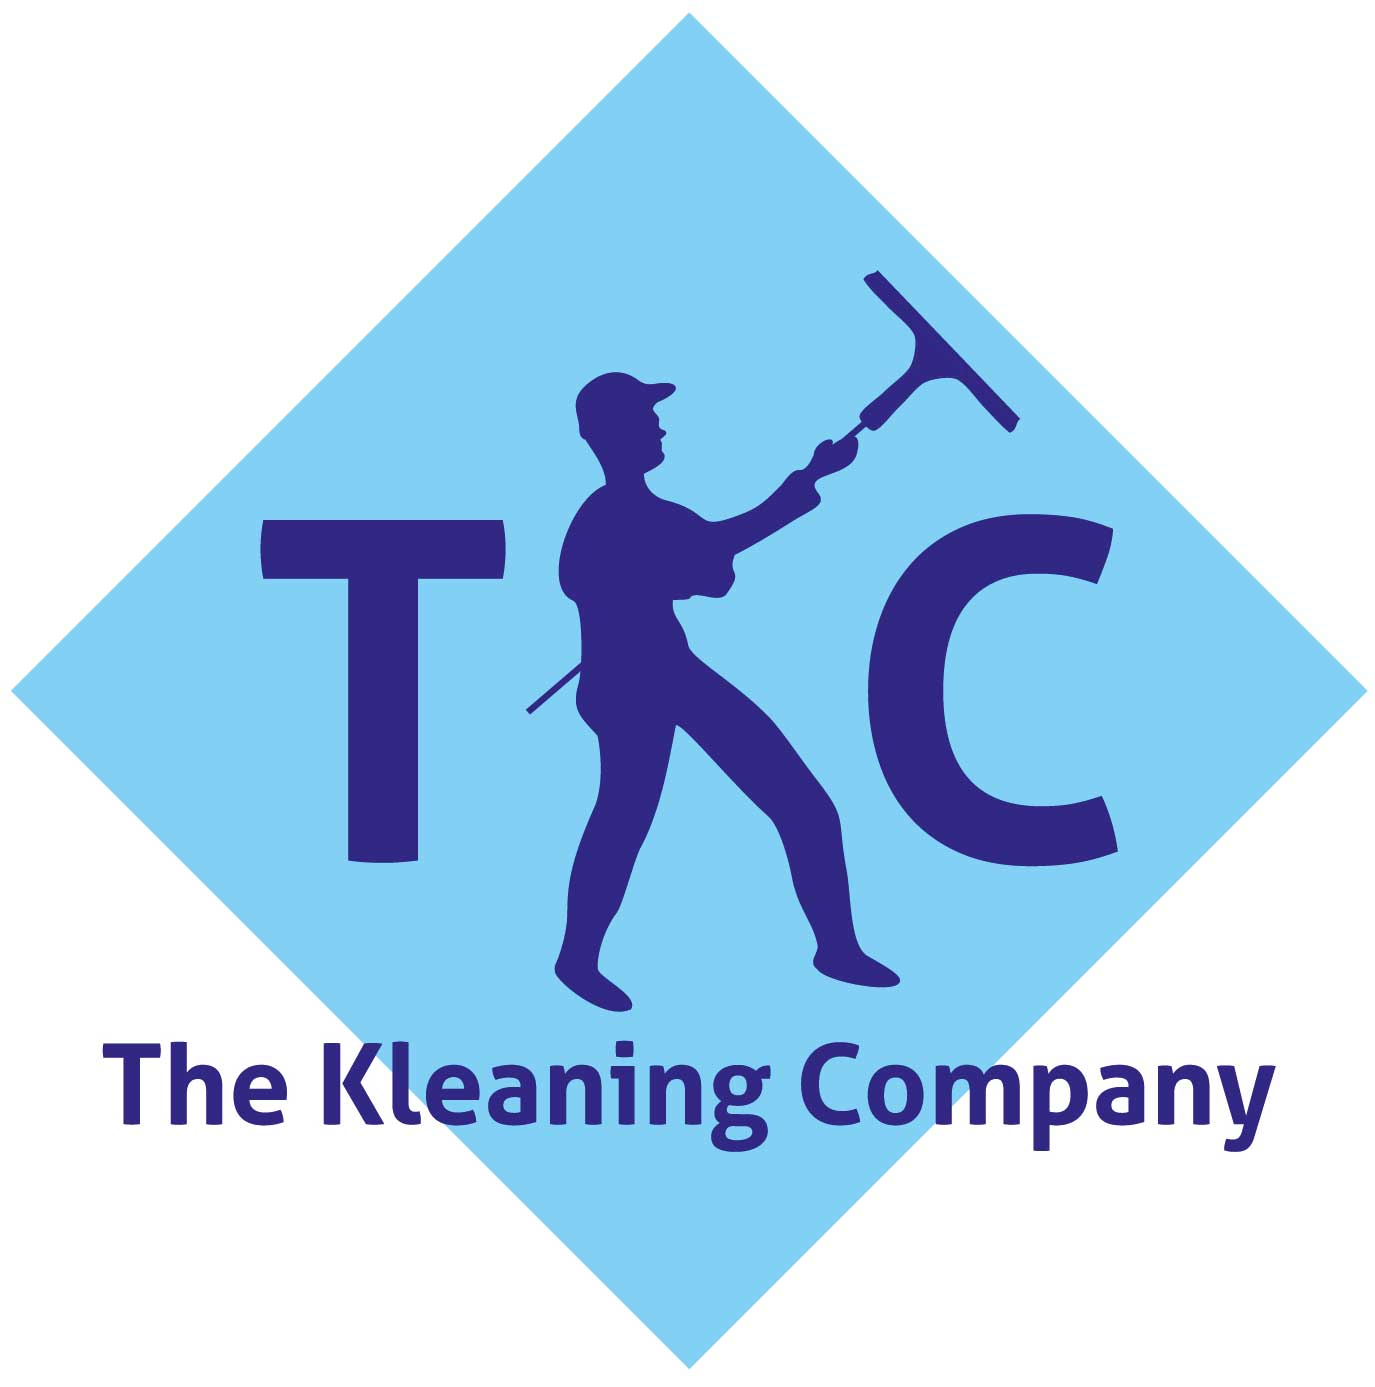 The Kleaning Company Ltd